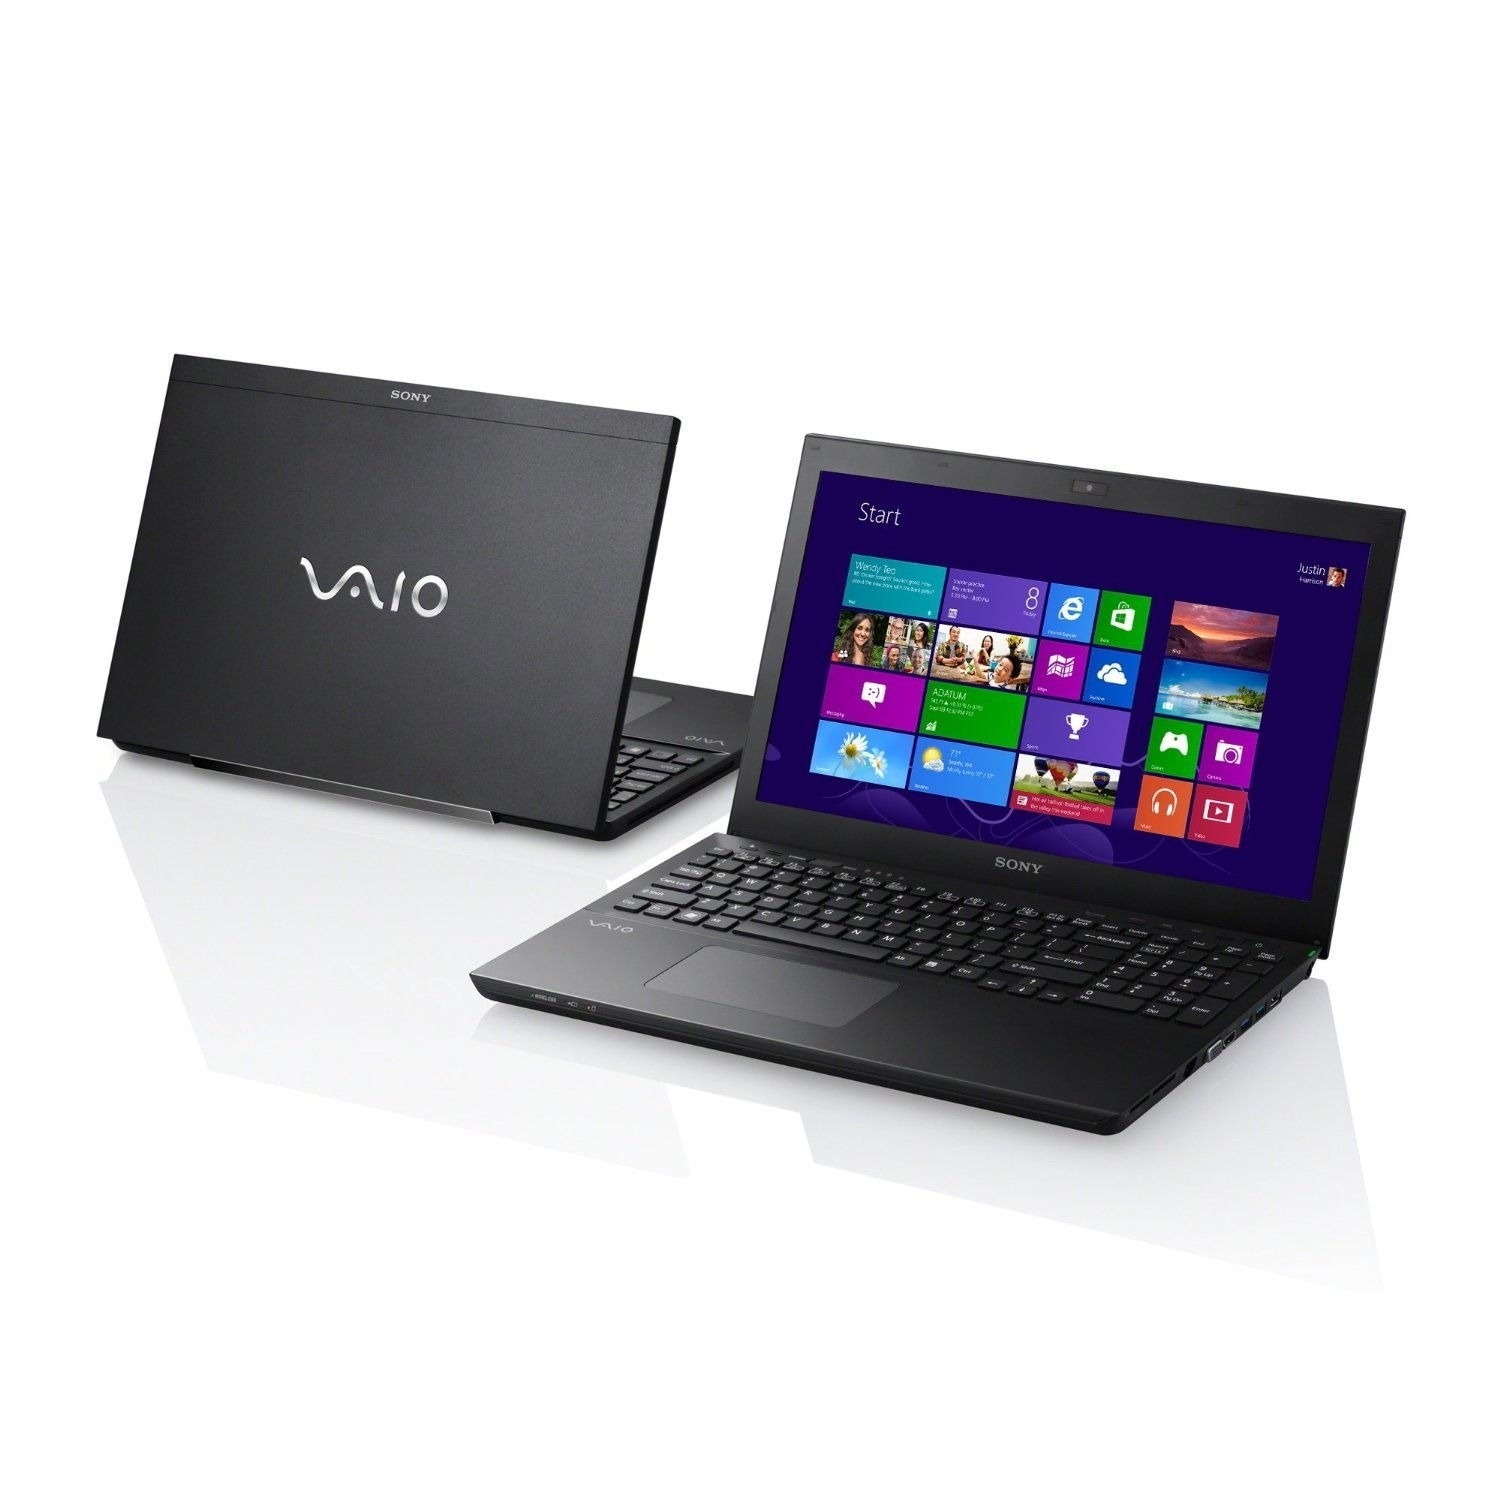 tonpc vente au maroc pc portable sony vaio svs13 13 3 led hd core i5 3230m 2 6ghz 4g 740g hdd. Black Bedroom Furniture Sets. Home Design Ideas